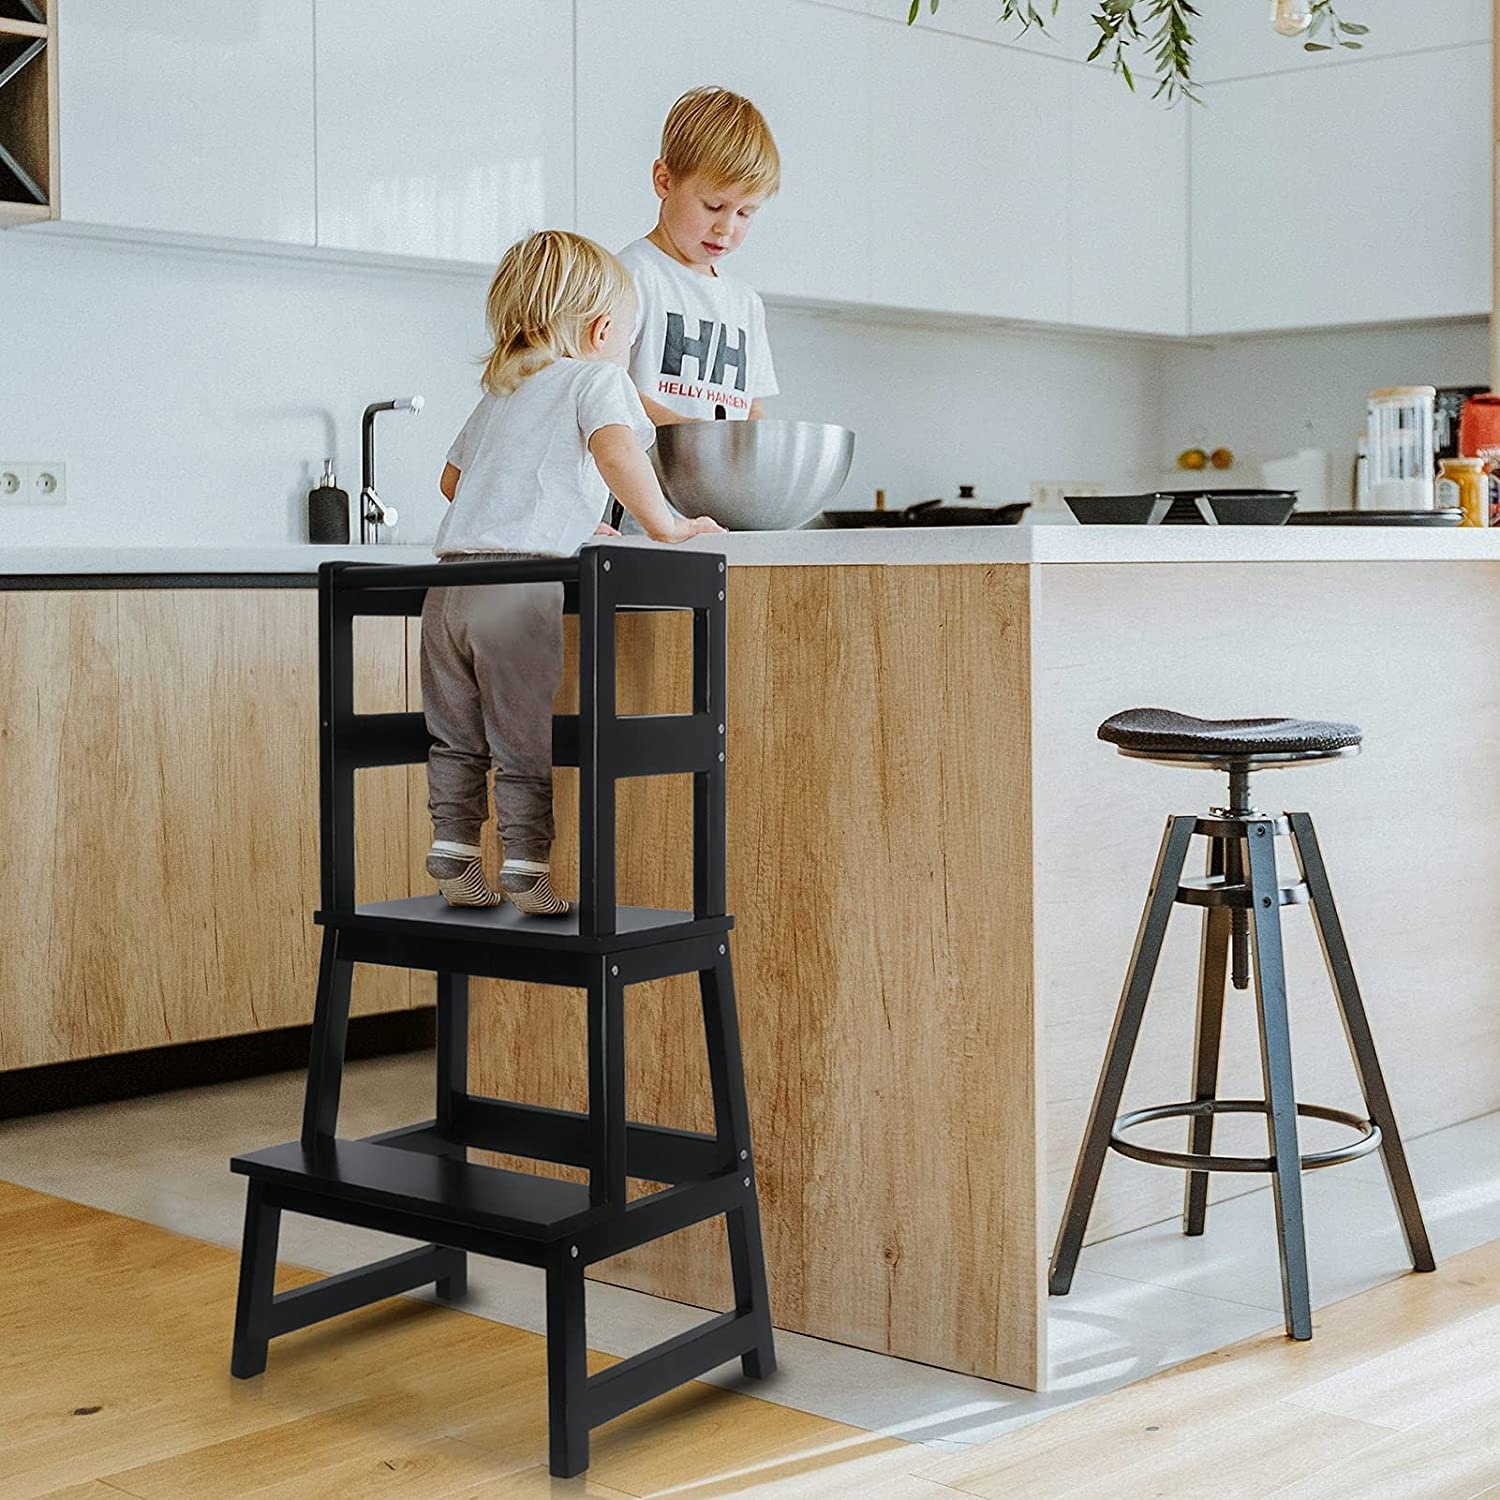 WishaLife Kids Kitchen Step Max 58% OFF Stool Toddler Safety Rail with Portland Mall